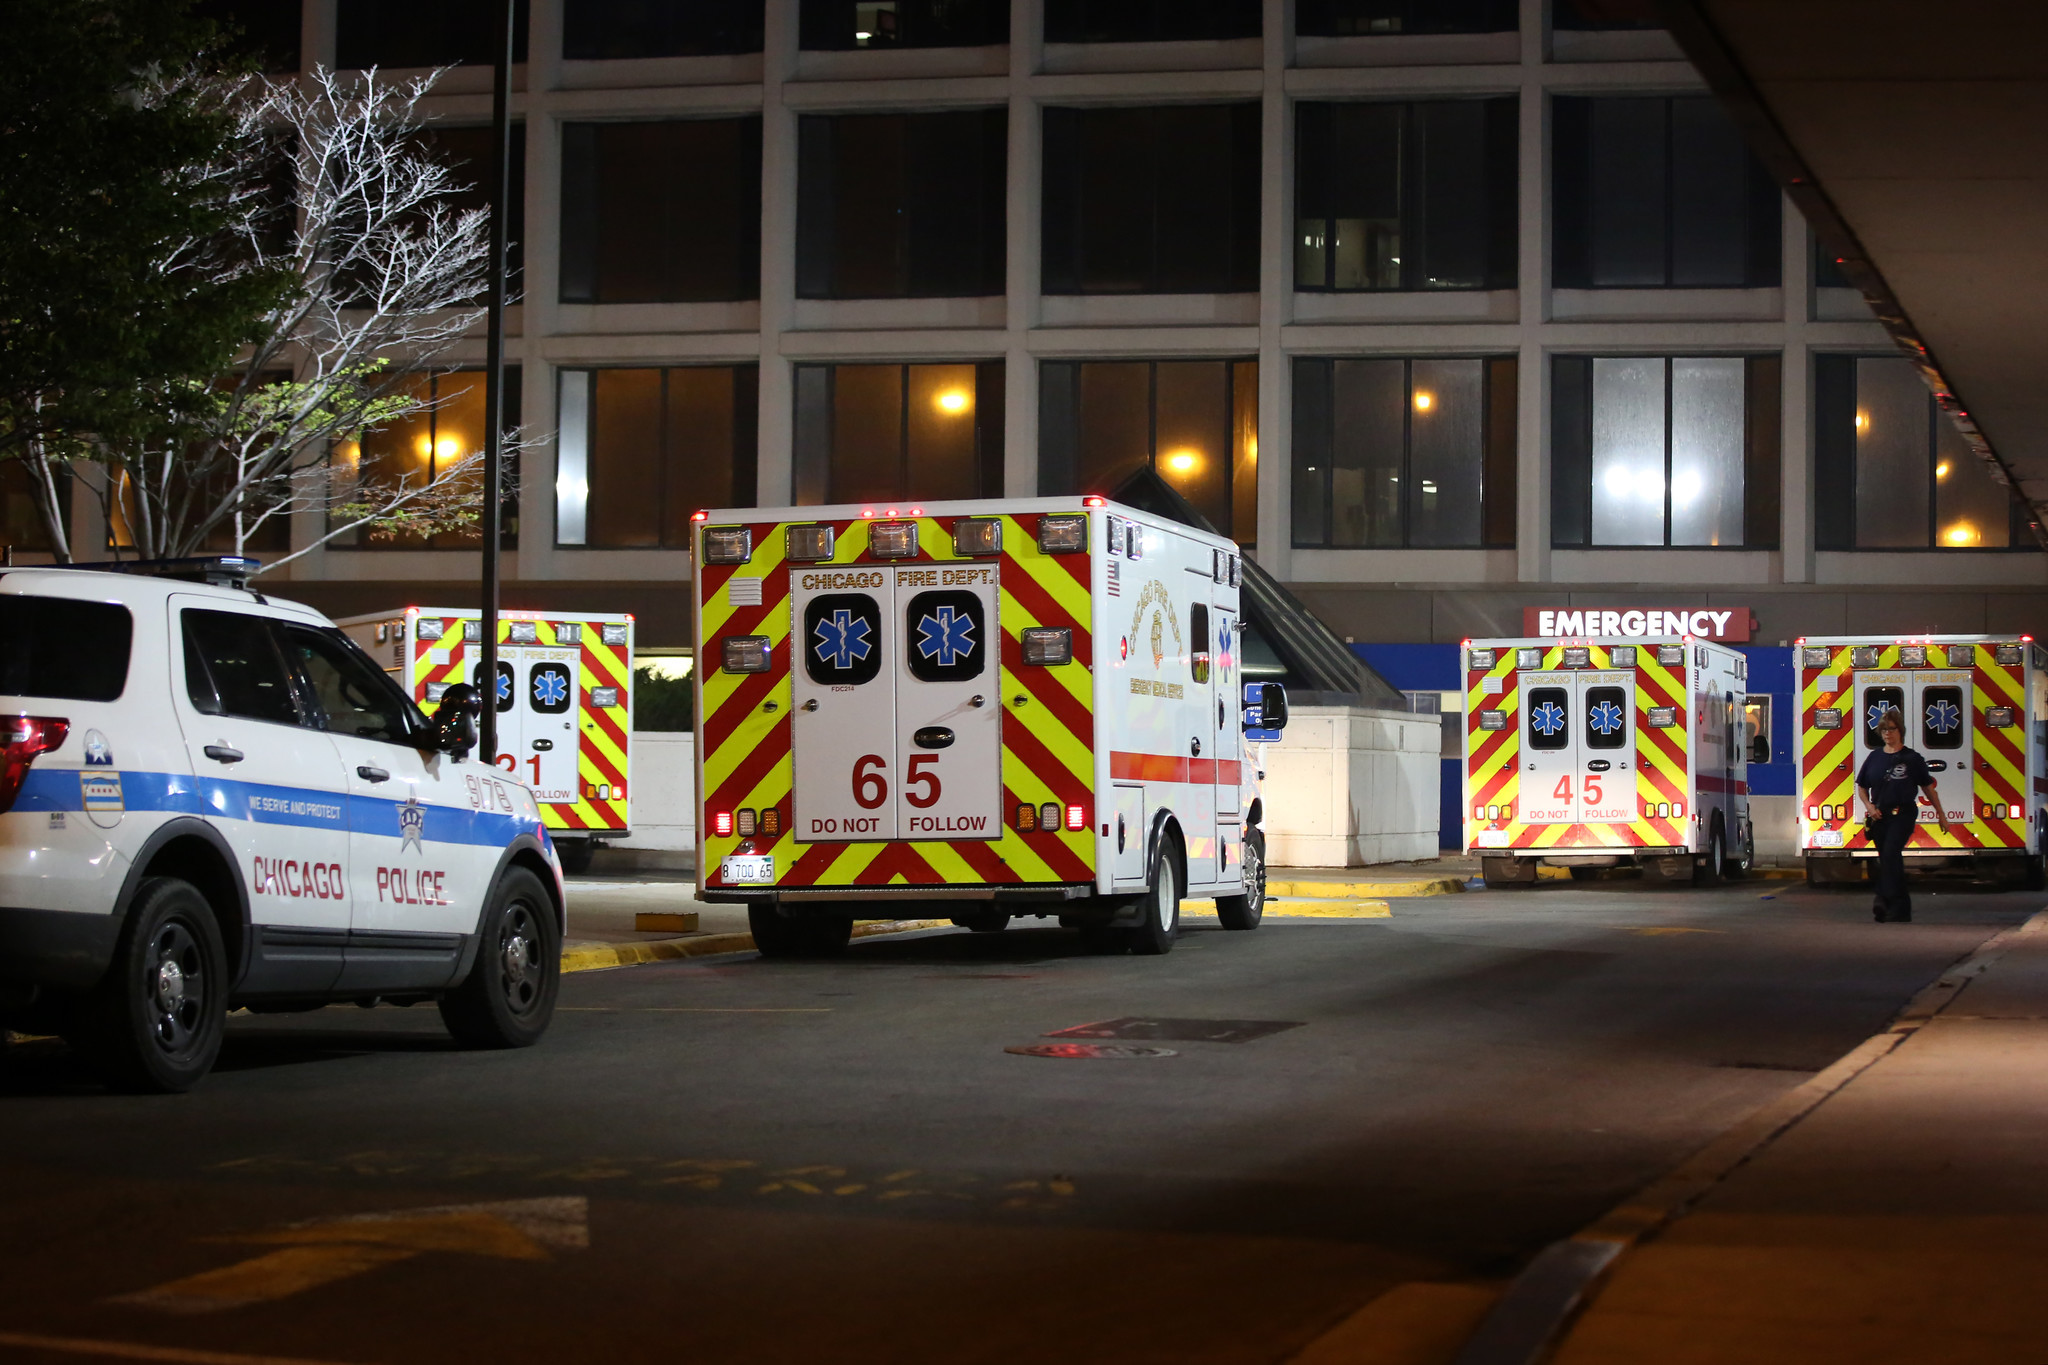 Robbery suspect dies after taken into custody by Chicago police